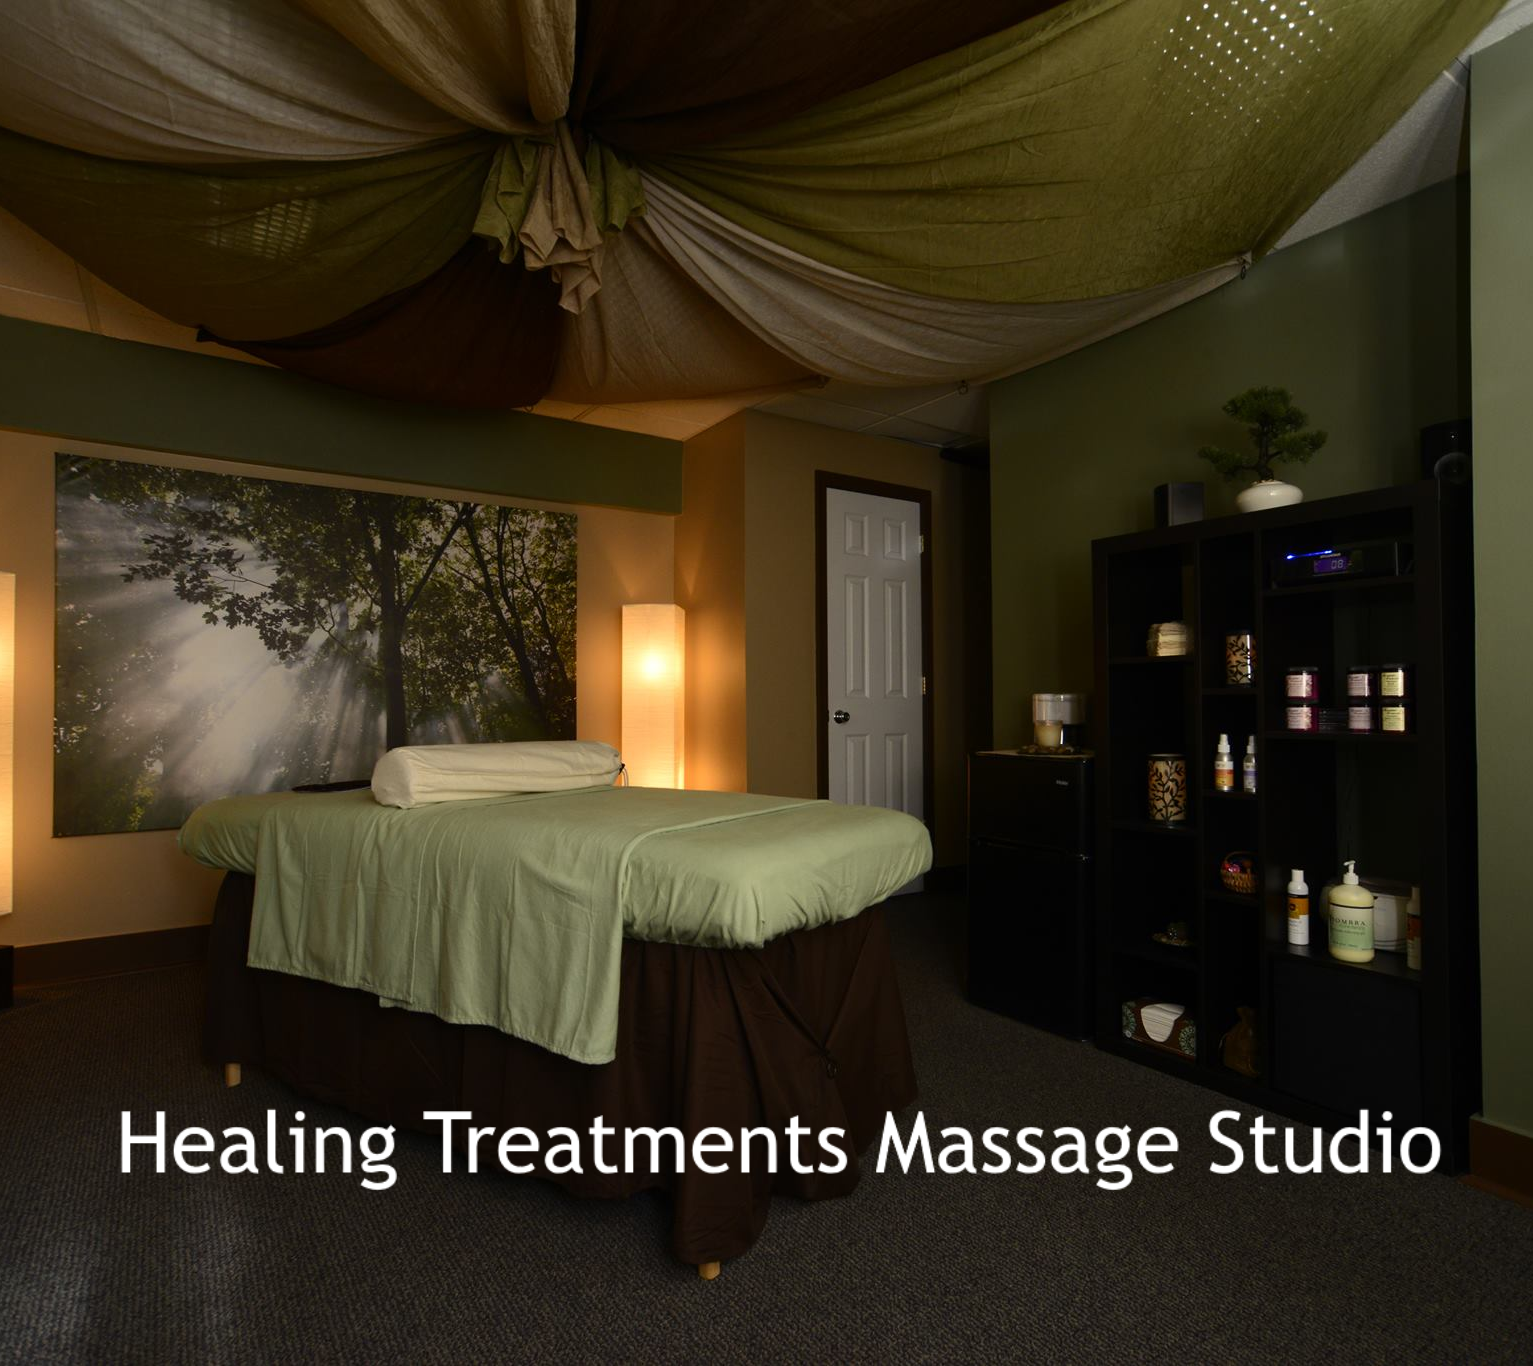 Healing Treatments Massage Studio, links to Facebook page